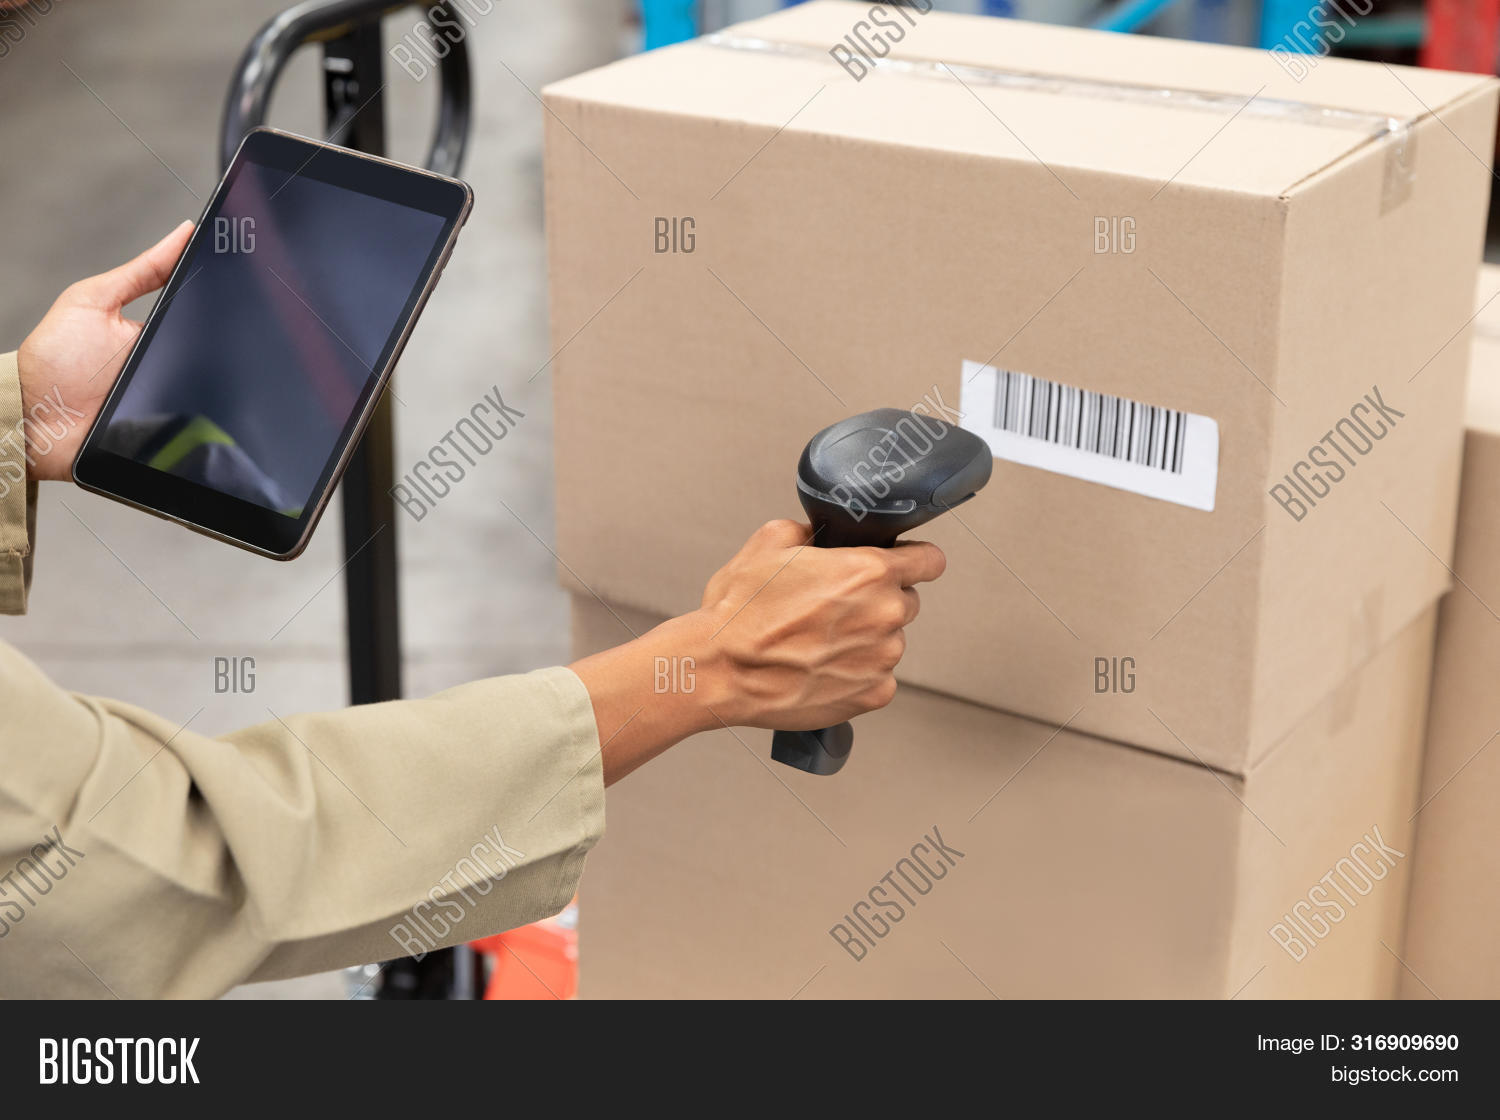 business,cardboard box,checking,communication,connection,deliver,digital tablet,distribution,distribution warehouse,factory,female,freight,freight transportation,global communication,goods,hand,holding,industry,job,logistics,maintaining,management,material,mixed-race,mixed-race person,occupation,package,packaging,pallet jack,part of,reading,scanning,screen,shipping,standing,storage,storehouse,supply,touchscreen,uniform,warehouse,wireless technology,woman,worker,working,workplace,young adult,young women